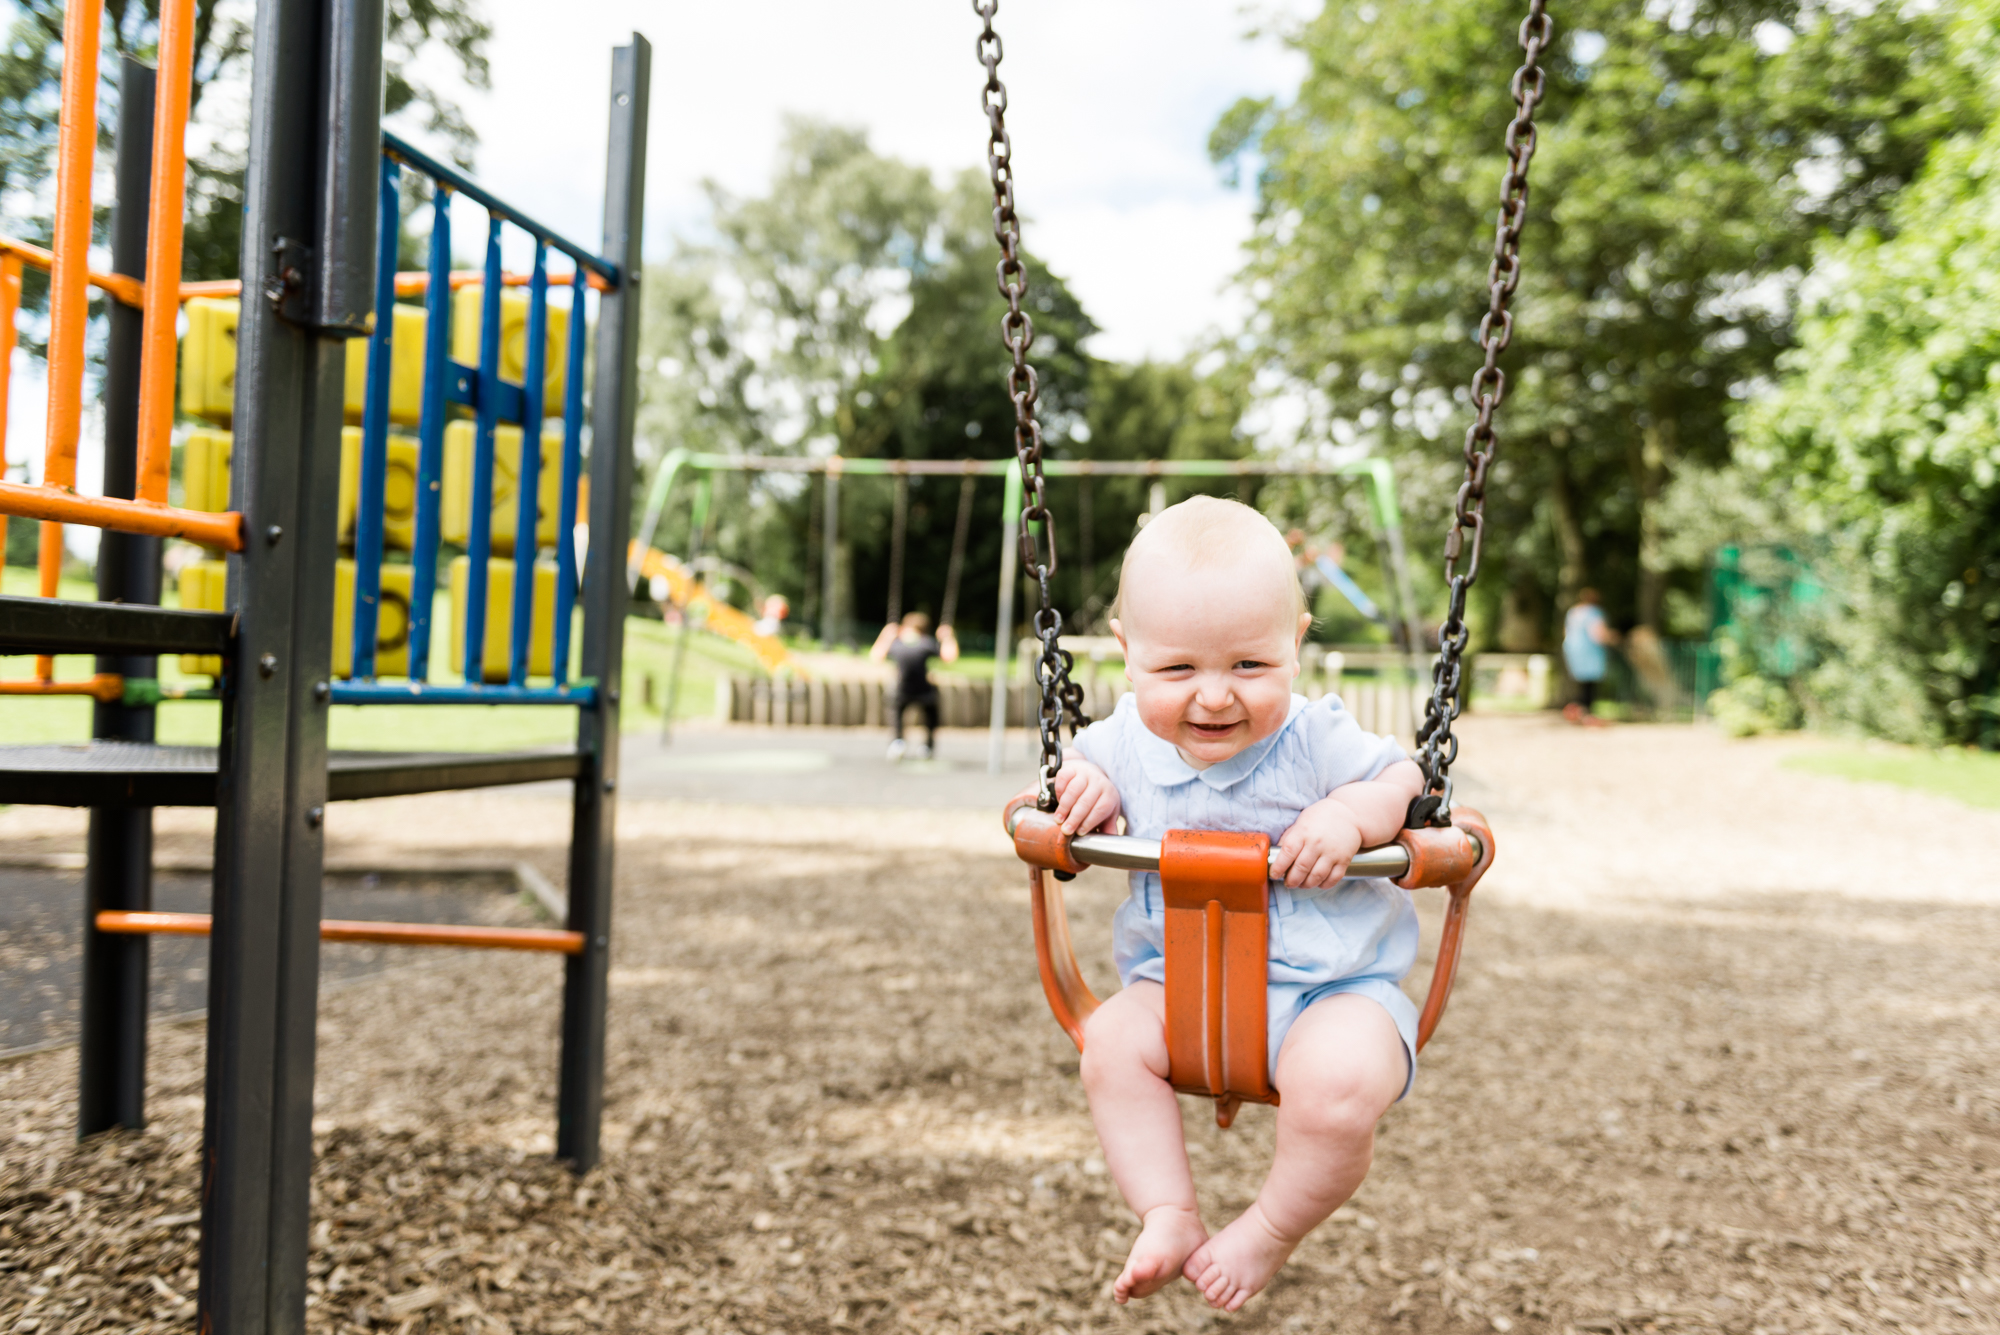 Cheshire Lifestyle Family Photography Baby Portrait Boys Park Swings Play - Jenny Harper Photographer-14.jpg